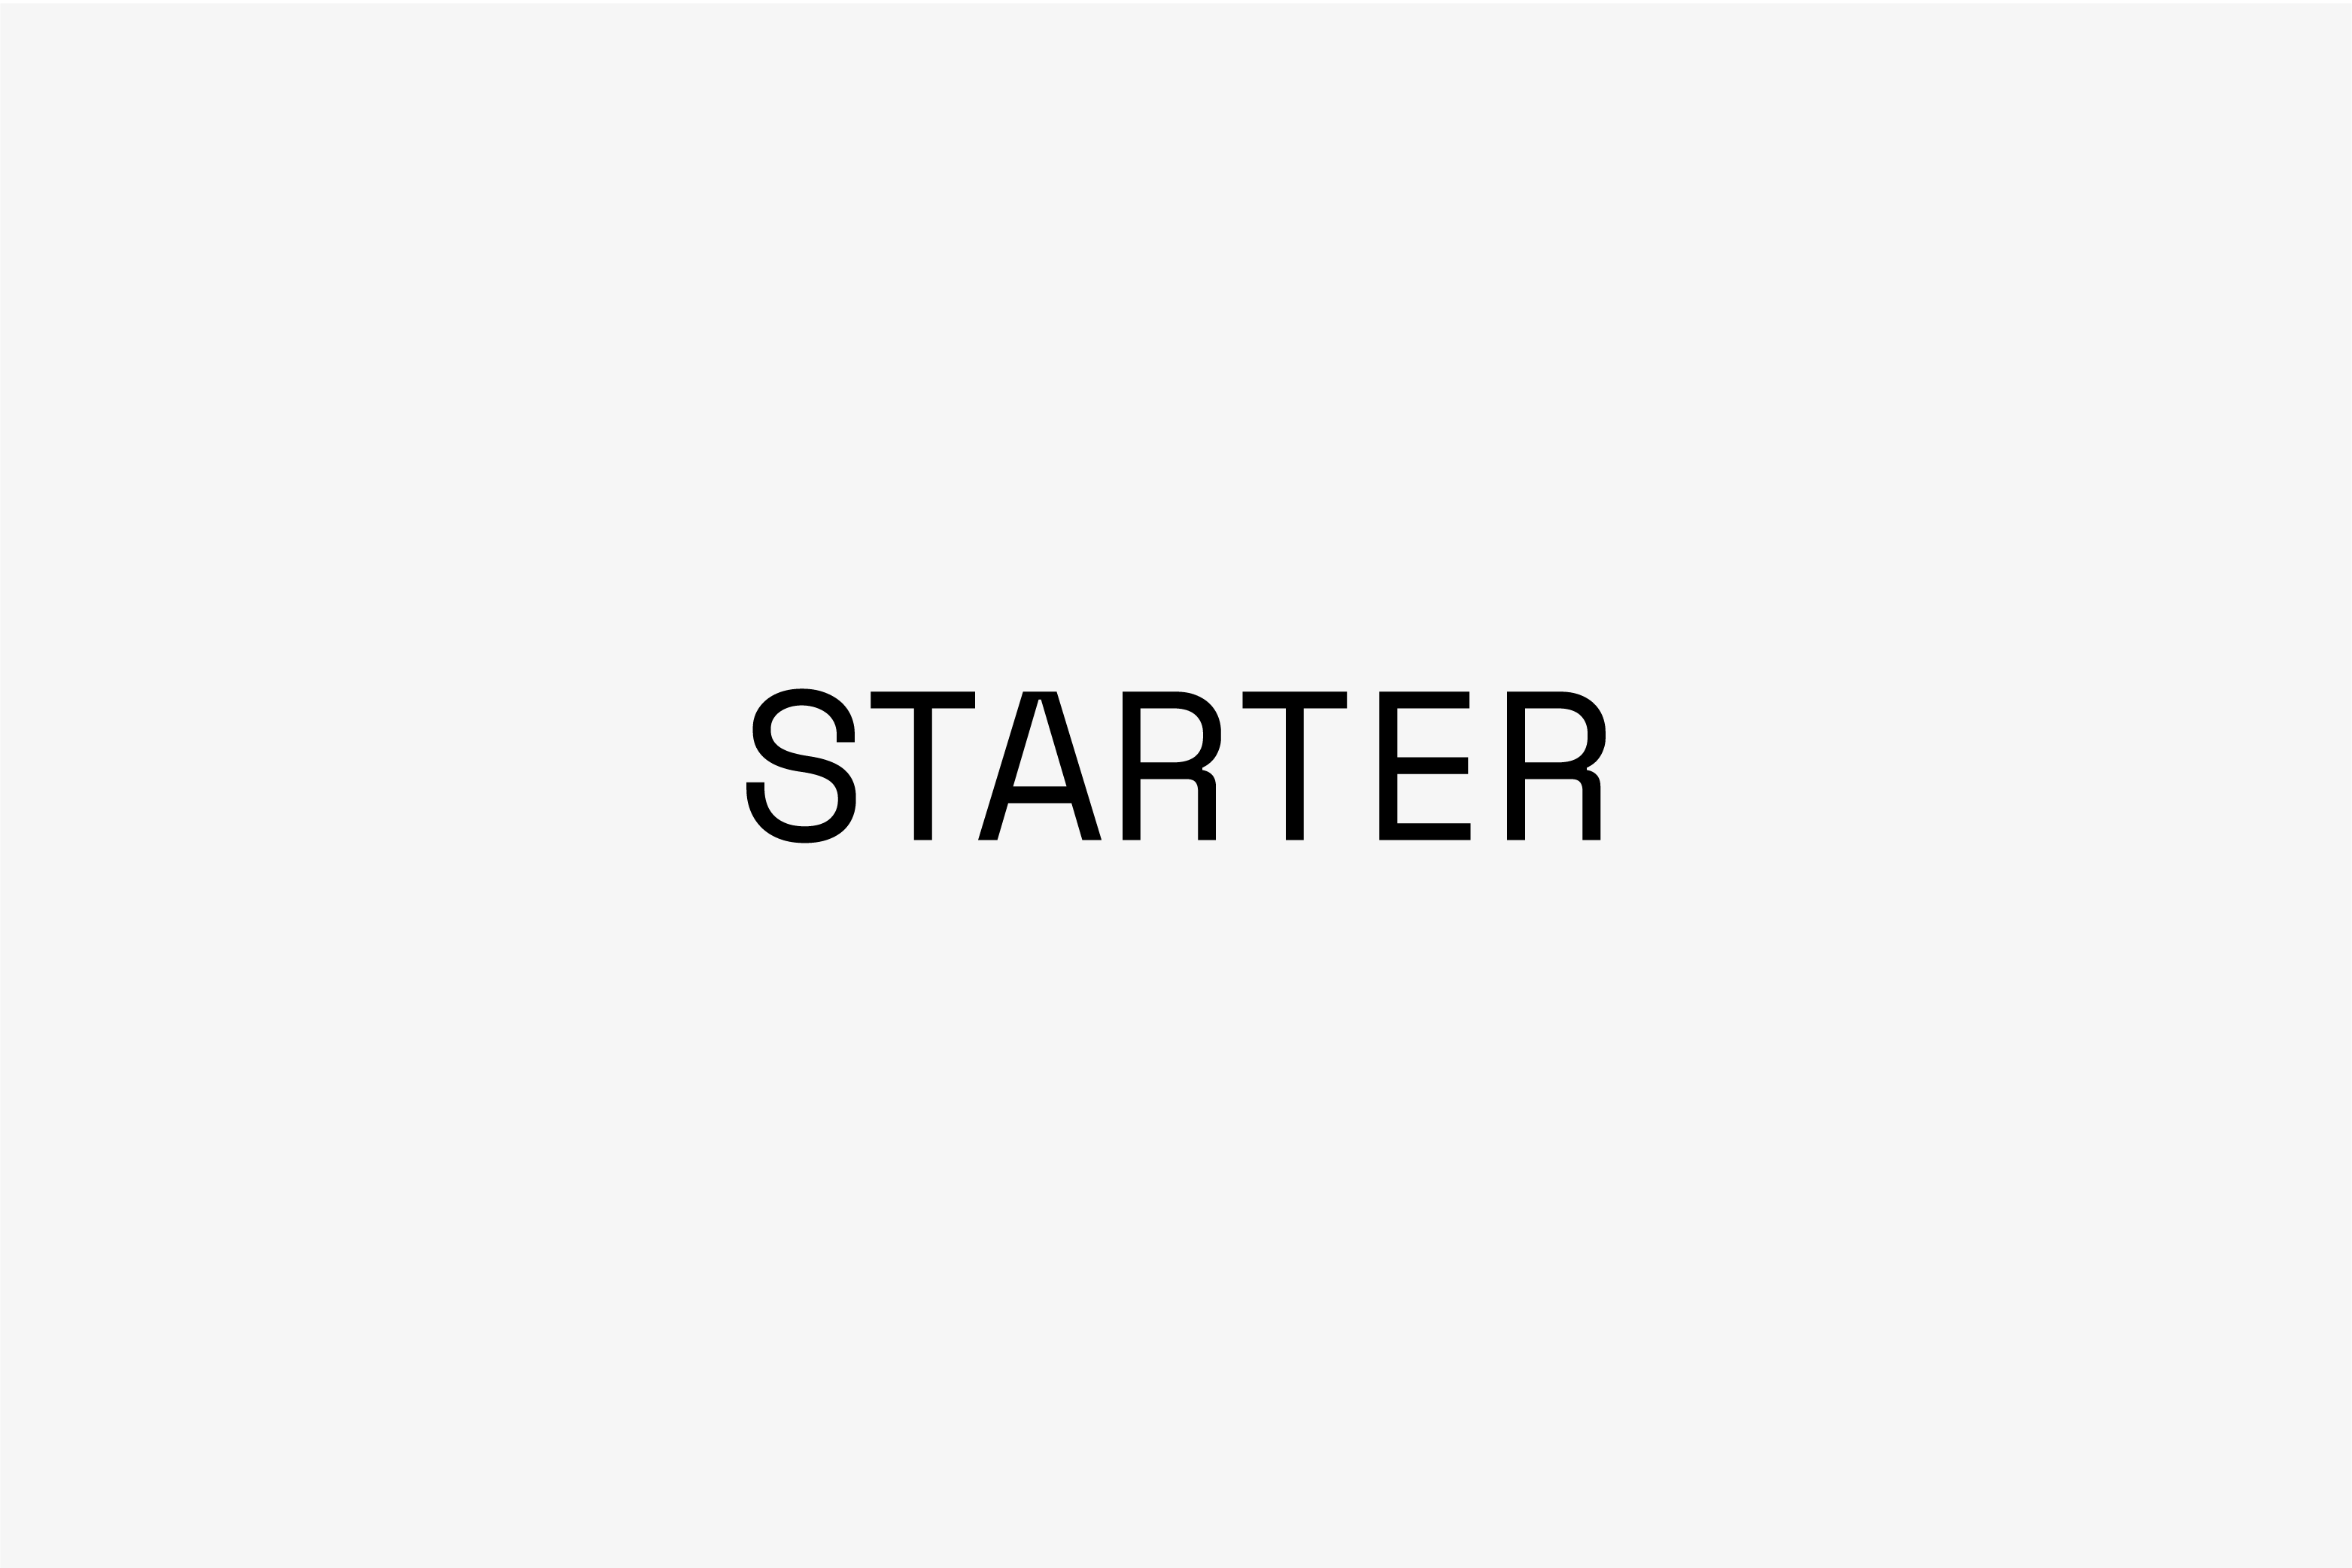 bp_starter_visual_logo_type_positive